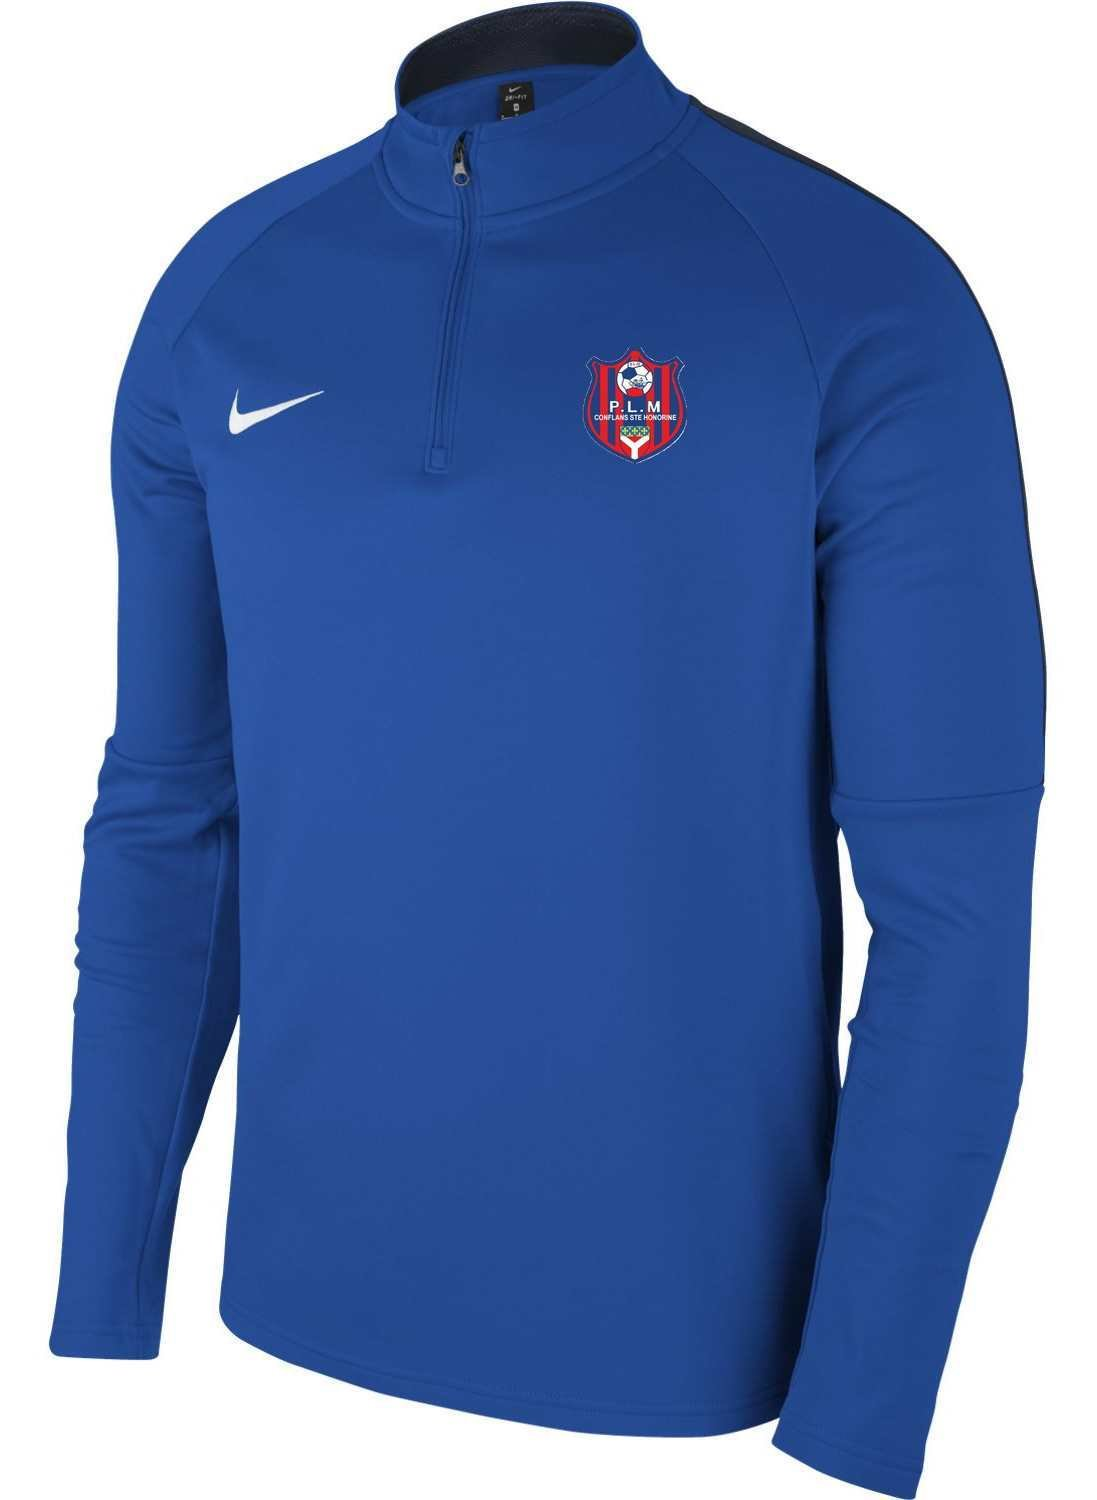 SWEAT 1/2 ZIP AC18 ADULTE NIKE PLM CONFLANS